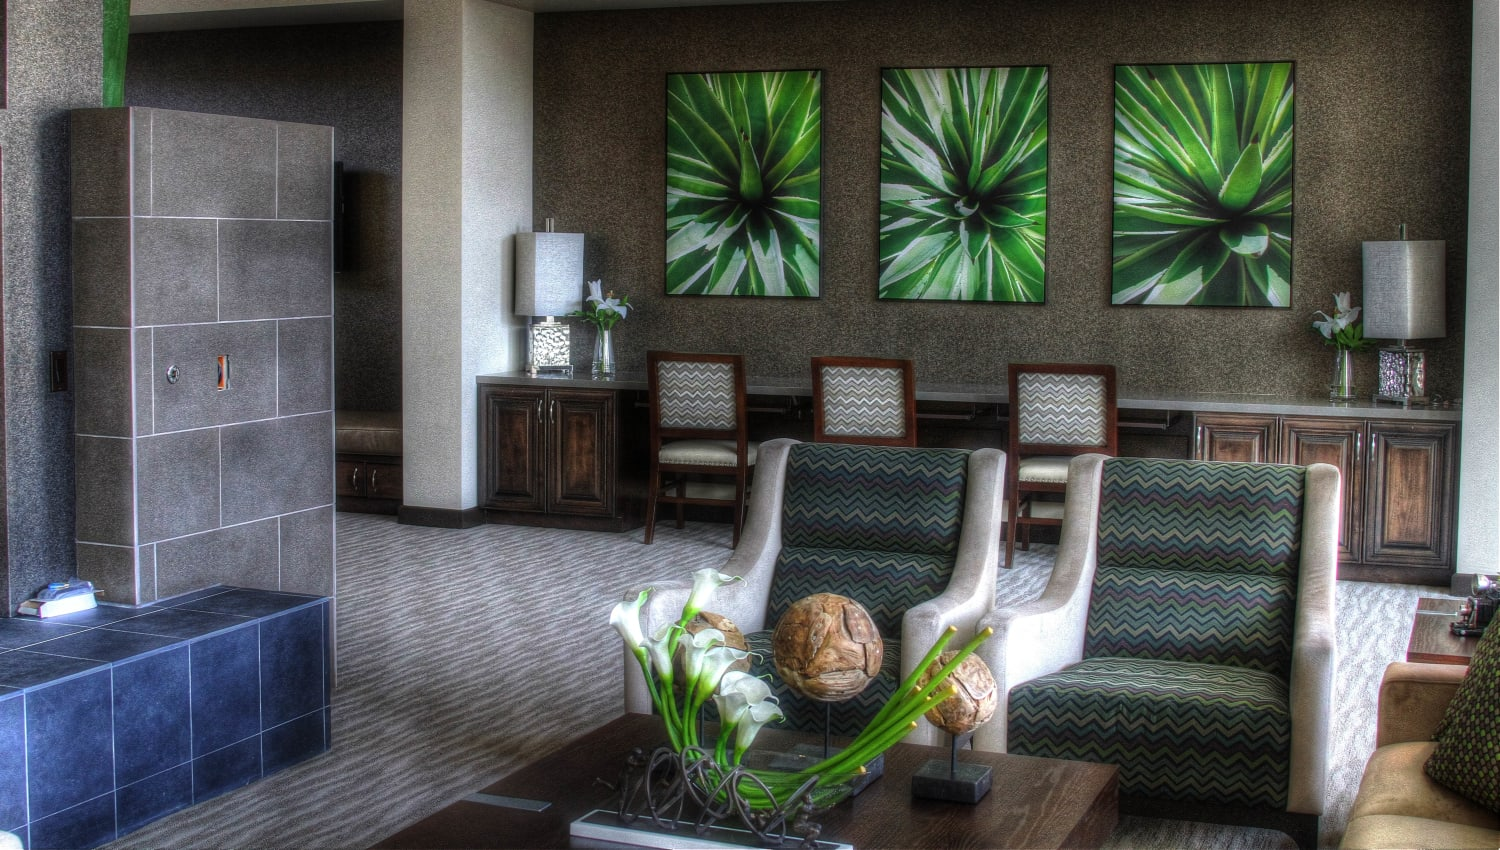 Modern decor in the clubhouse at Redstone at SanTan Village in Gilbert, Arizona